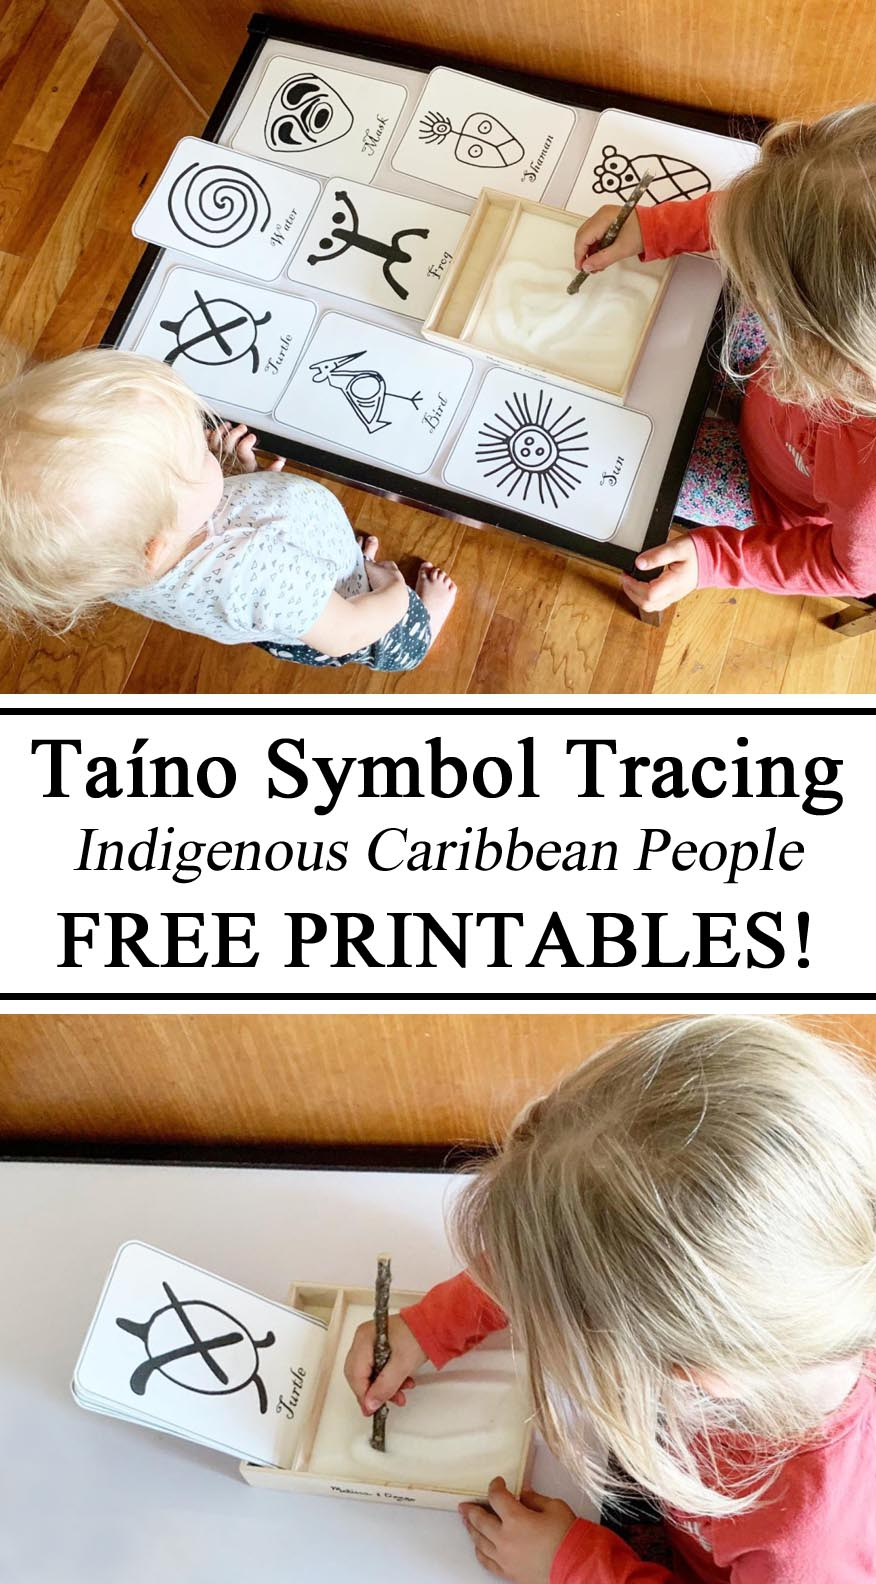 Taino Taíno Taínos Taino Symbol Petroglyphs Carvings Traving Carribean Puerto Rico Jamaica Free Download Printables Hands on Learning Fine Motor Skills Activity Activities Preschool PreK Kindergarten Early Years Childhood Educational Resources Montessori Language Literacy Development Learn to Write Pen Pencil Positioning Cards Teacher Educator Parent Ideas Inspiration